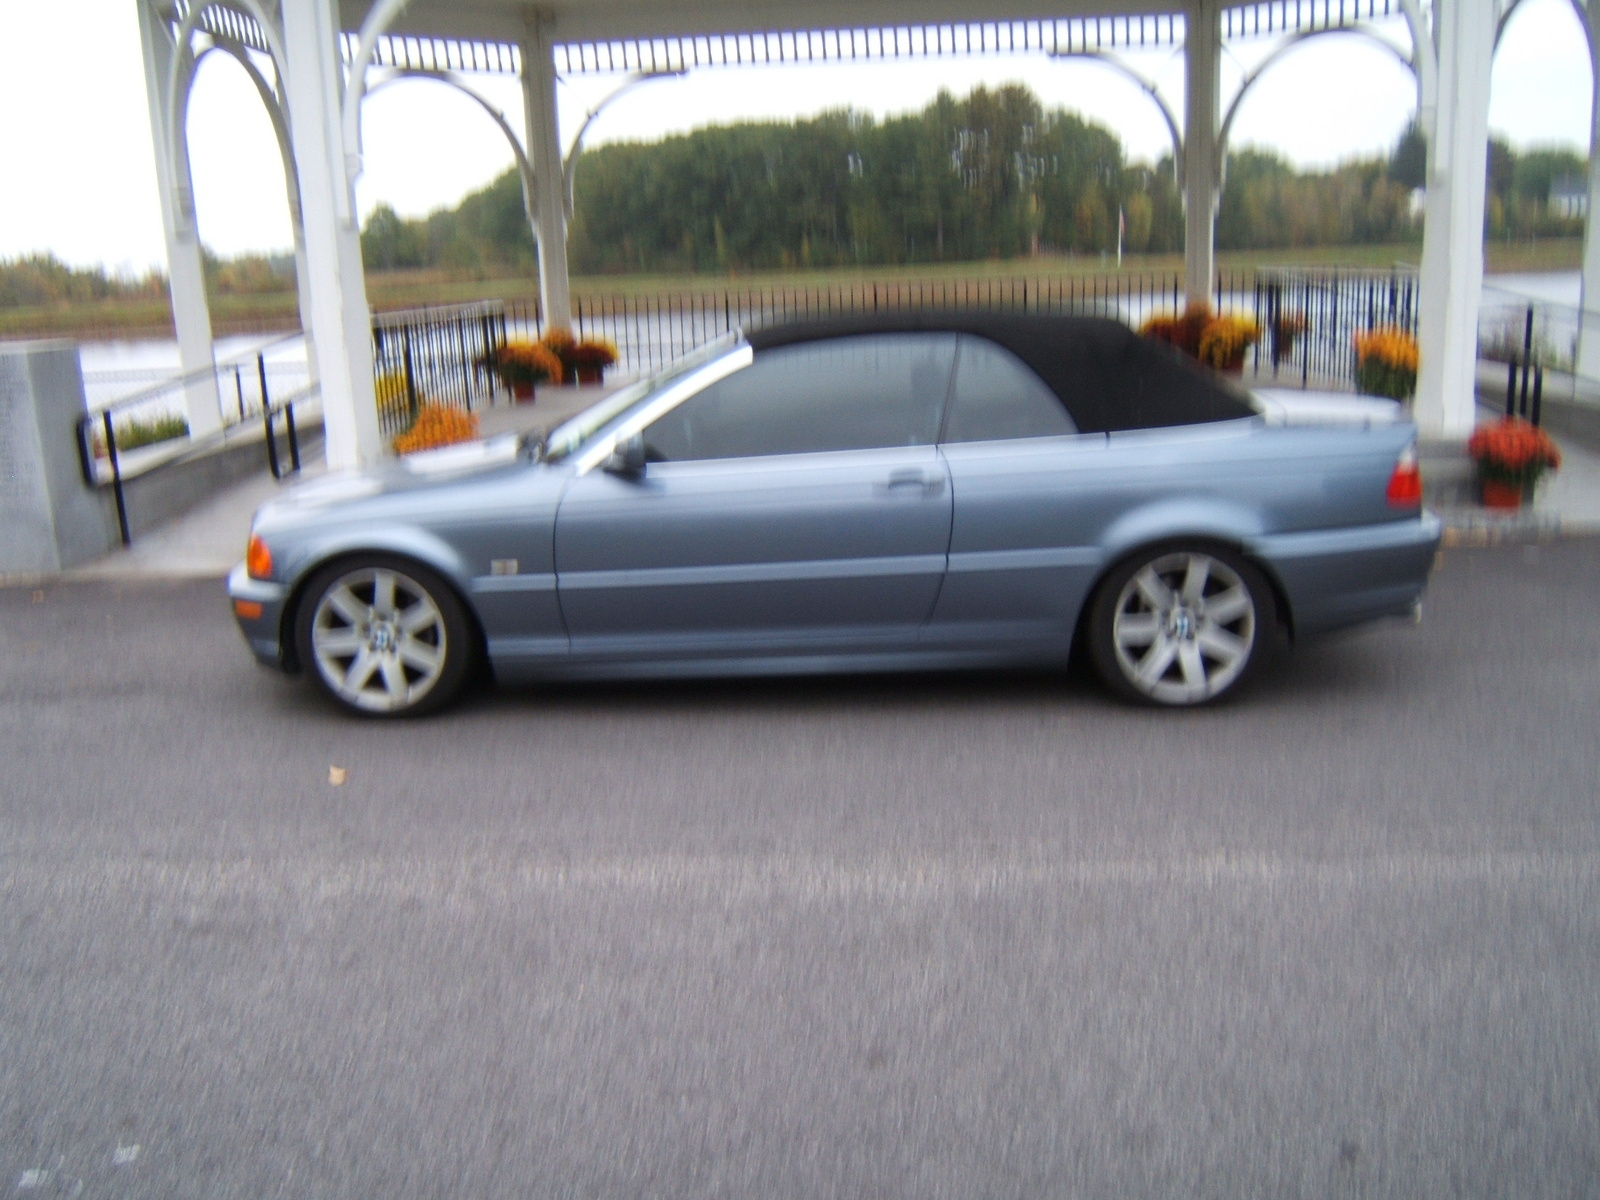 BMW 3 series 325Ci 2003 photo - 12